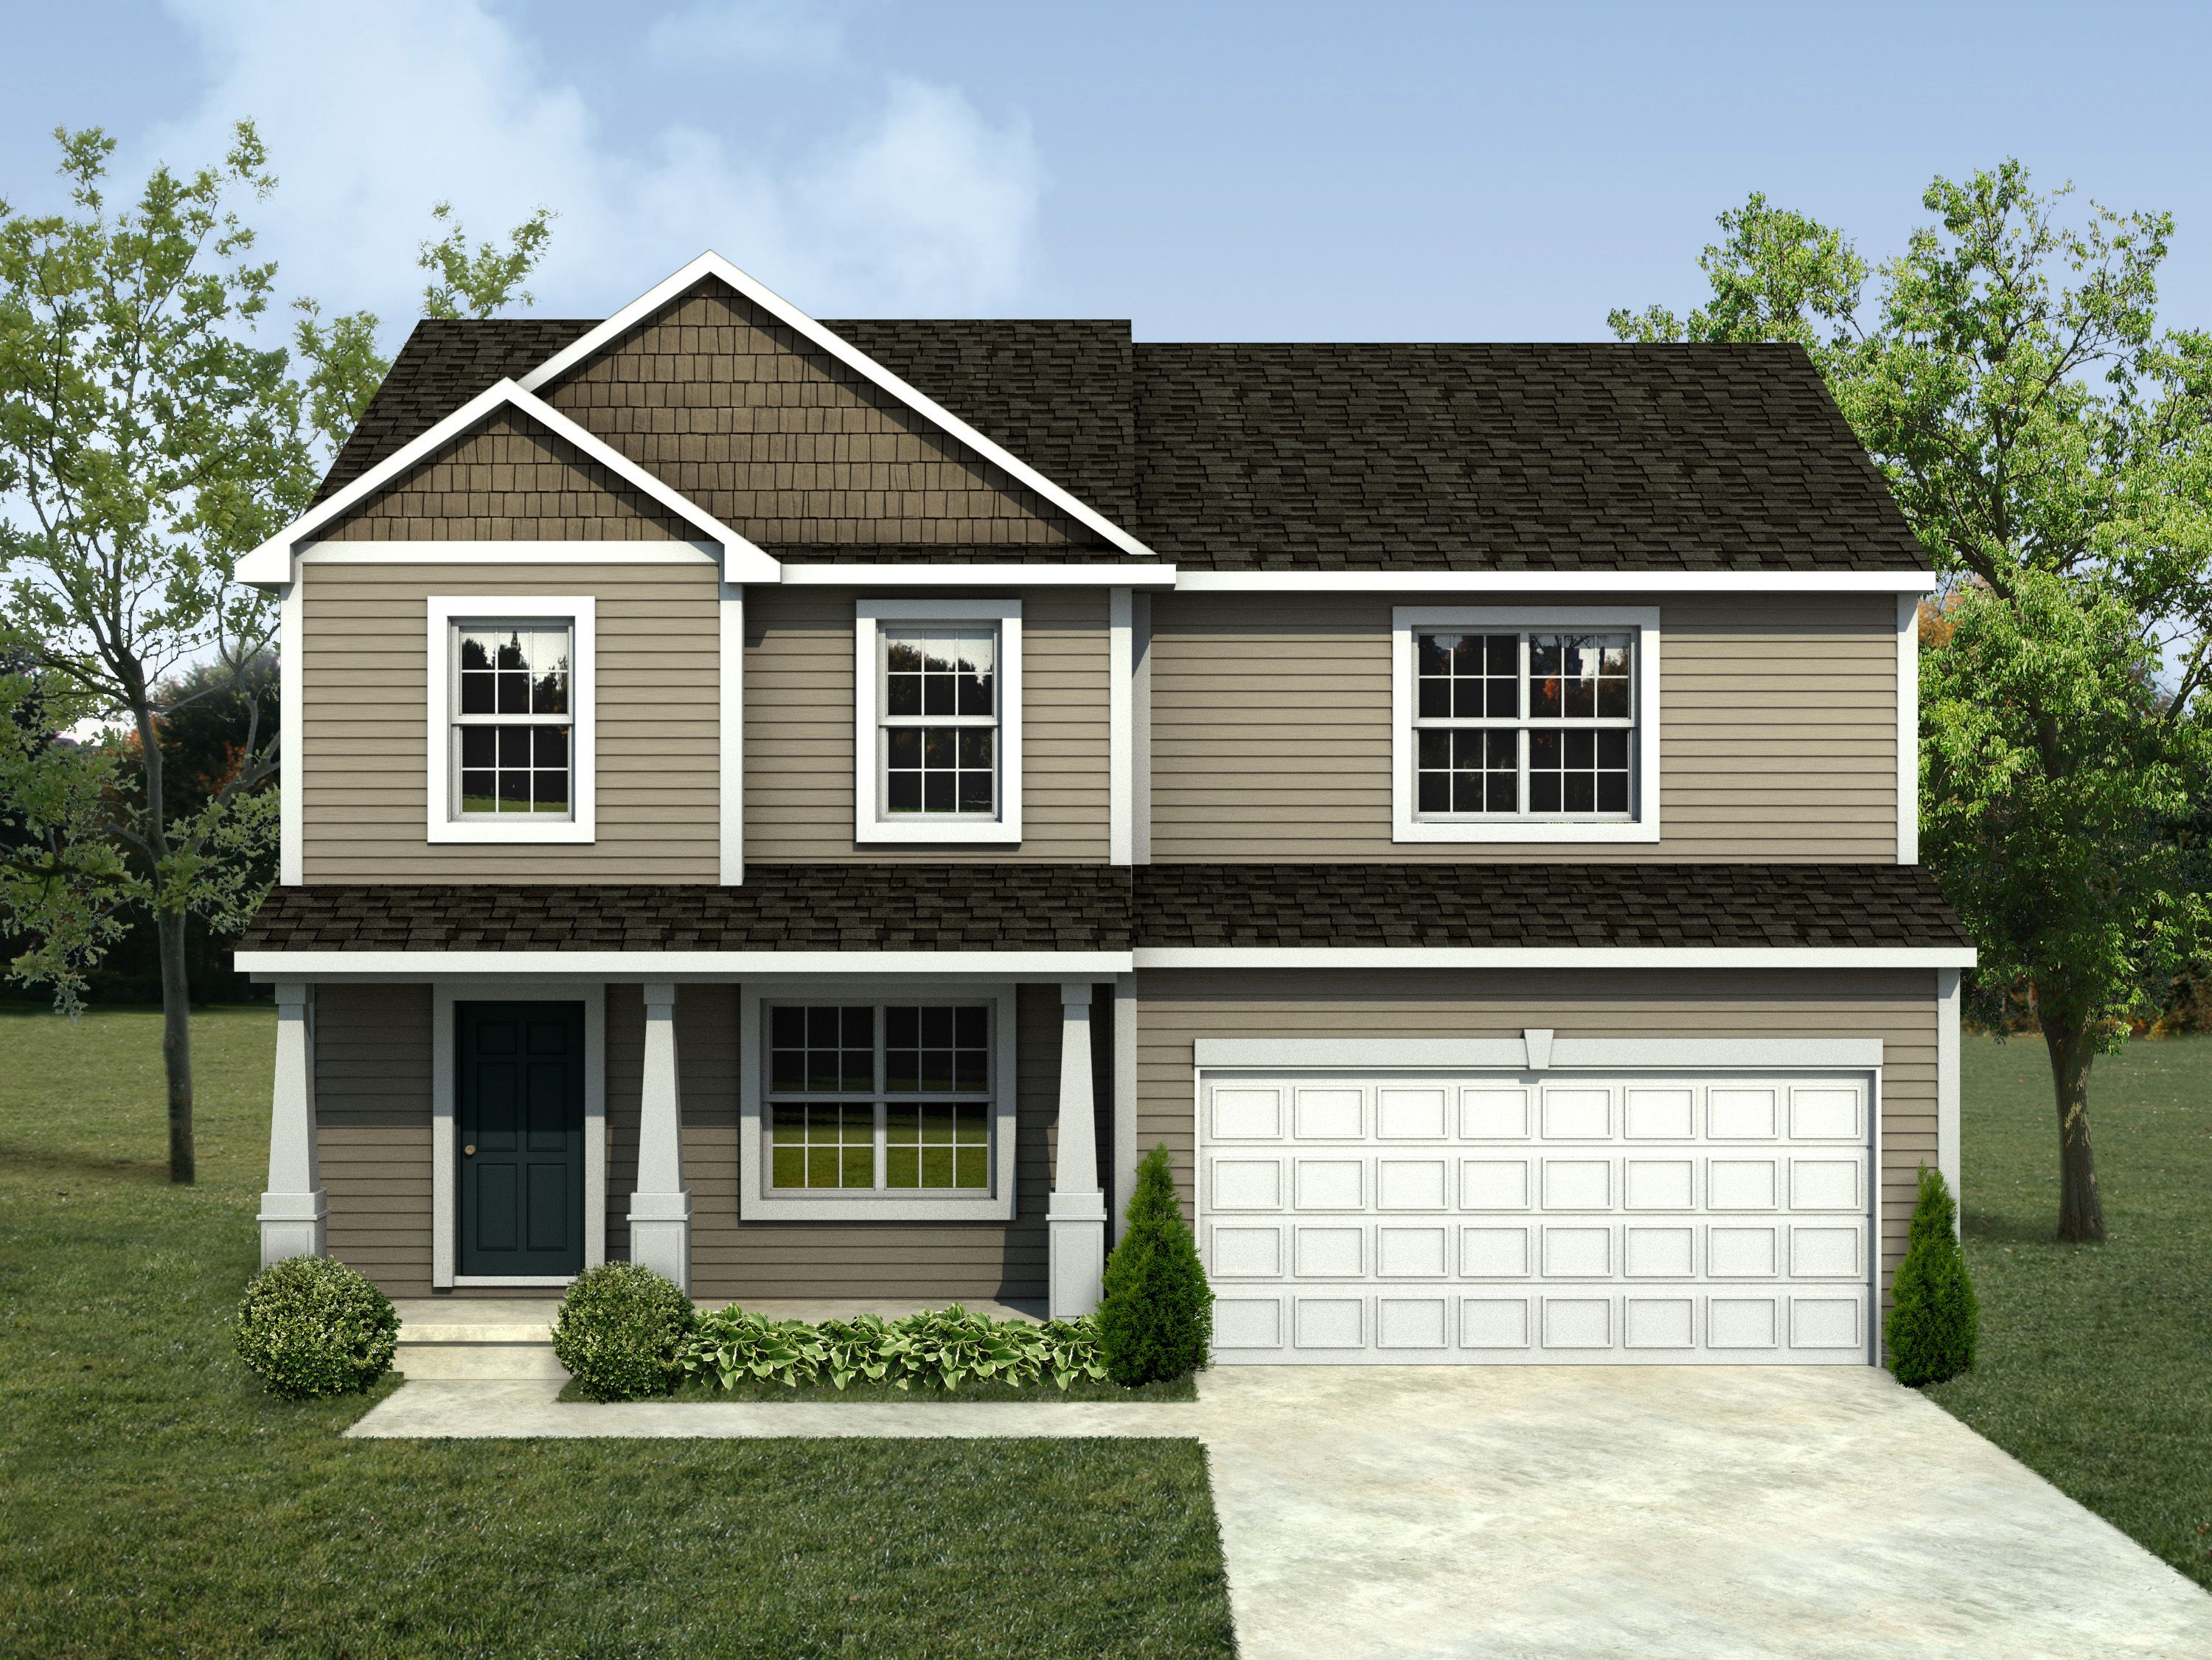 chesterfield township homes for sale homes for sale in chesterfield township mi homegain